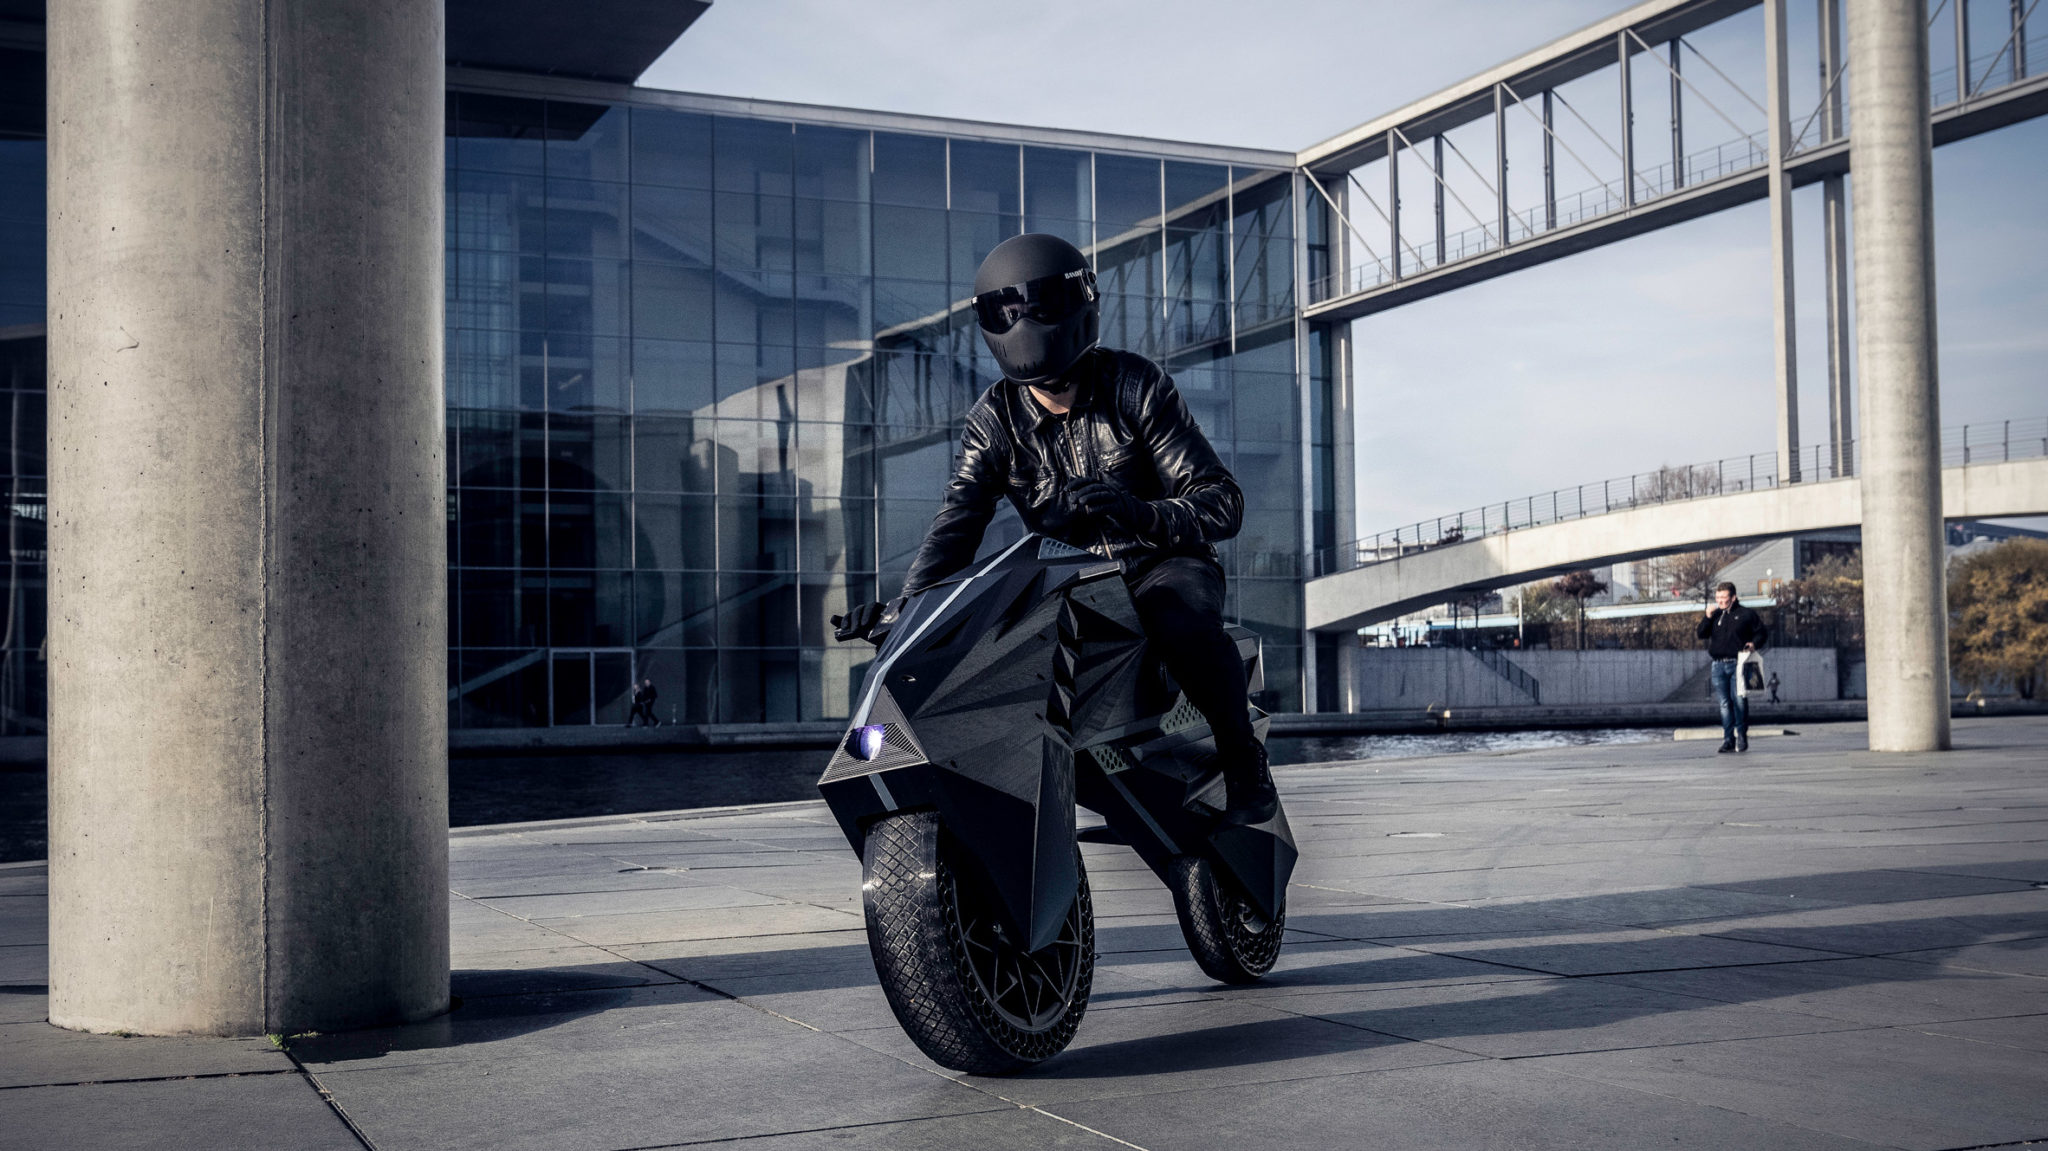 The Nera is the first 3D printed motorcycle